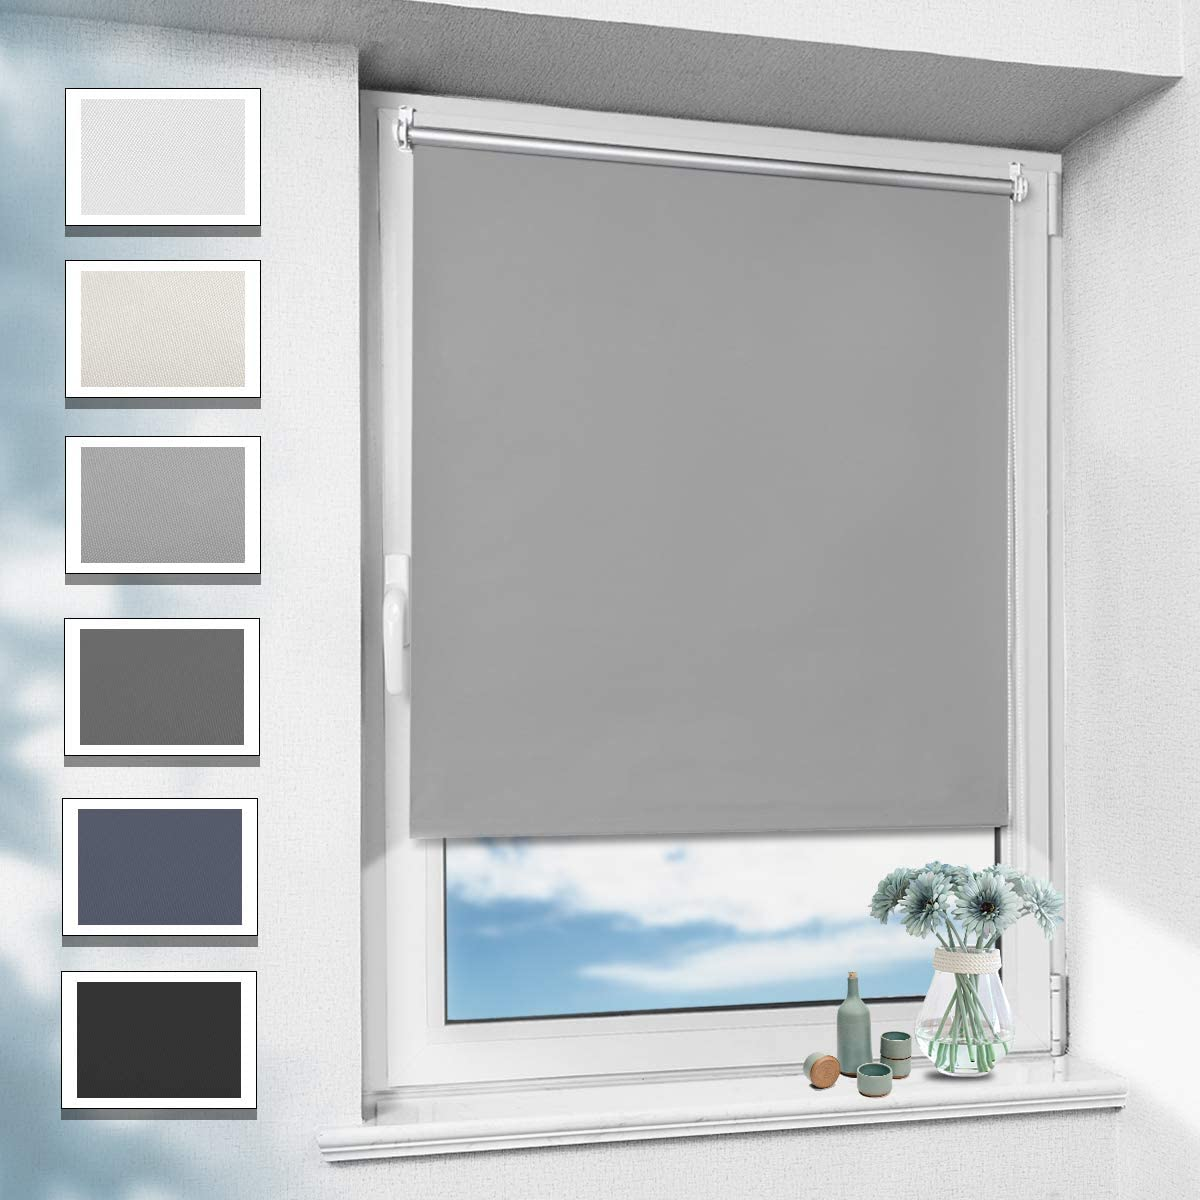 OUBO Blackout Roller Blind 70 x 170 cm Gray Shade Opaque Thermal Insulation Ajustable Easy Fix Without Drilling: Amazon.es: Hogar